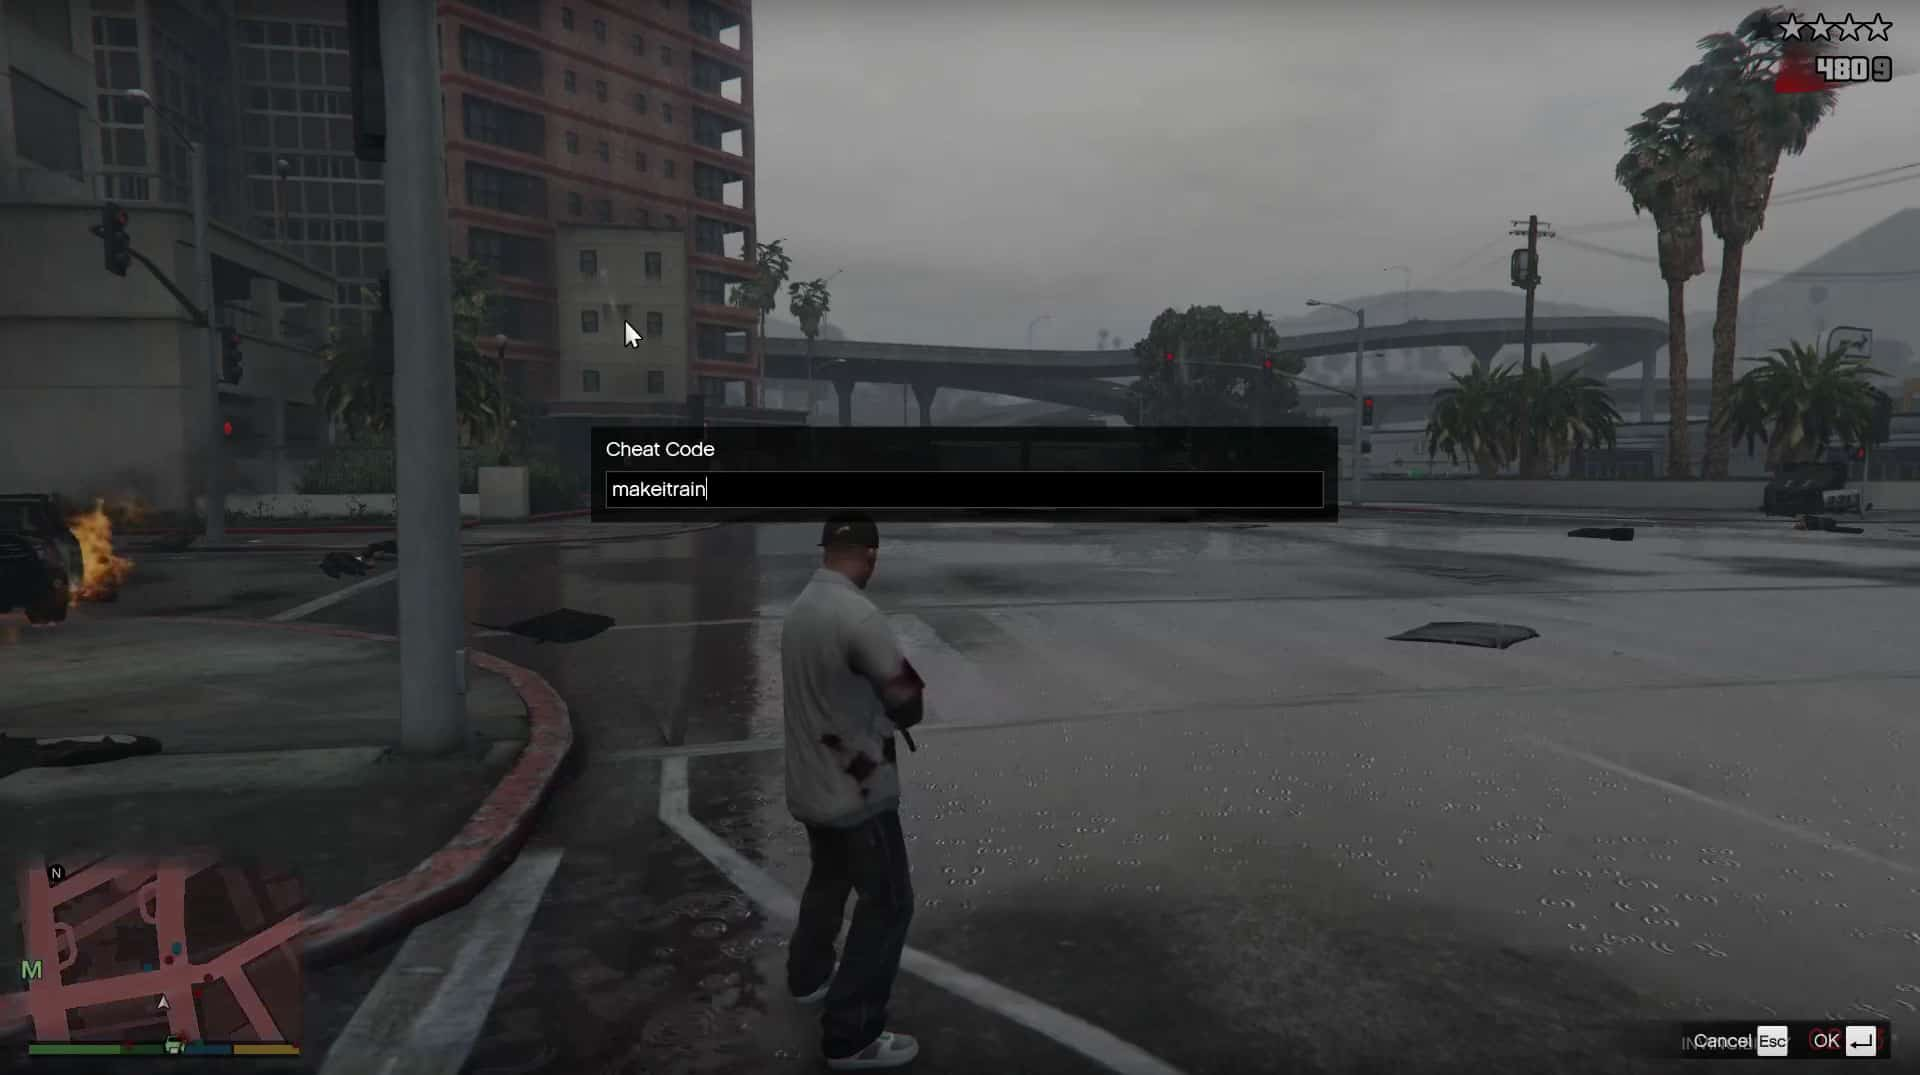 GTA 5 Cheats On PC: All Weapons, Invinciblity for Grand